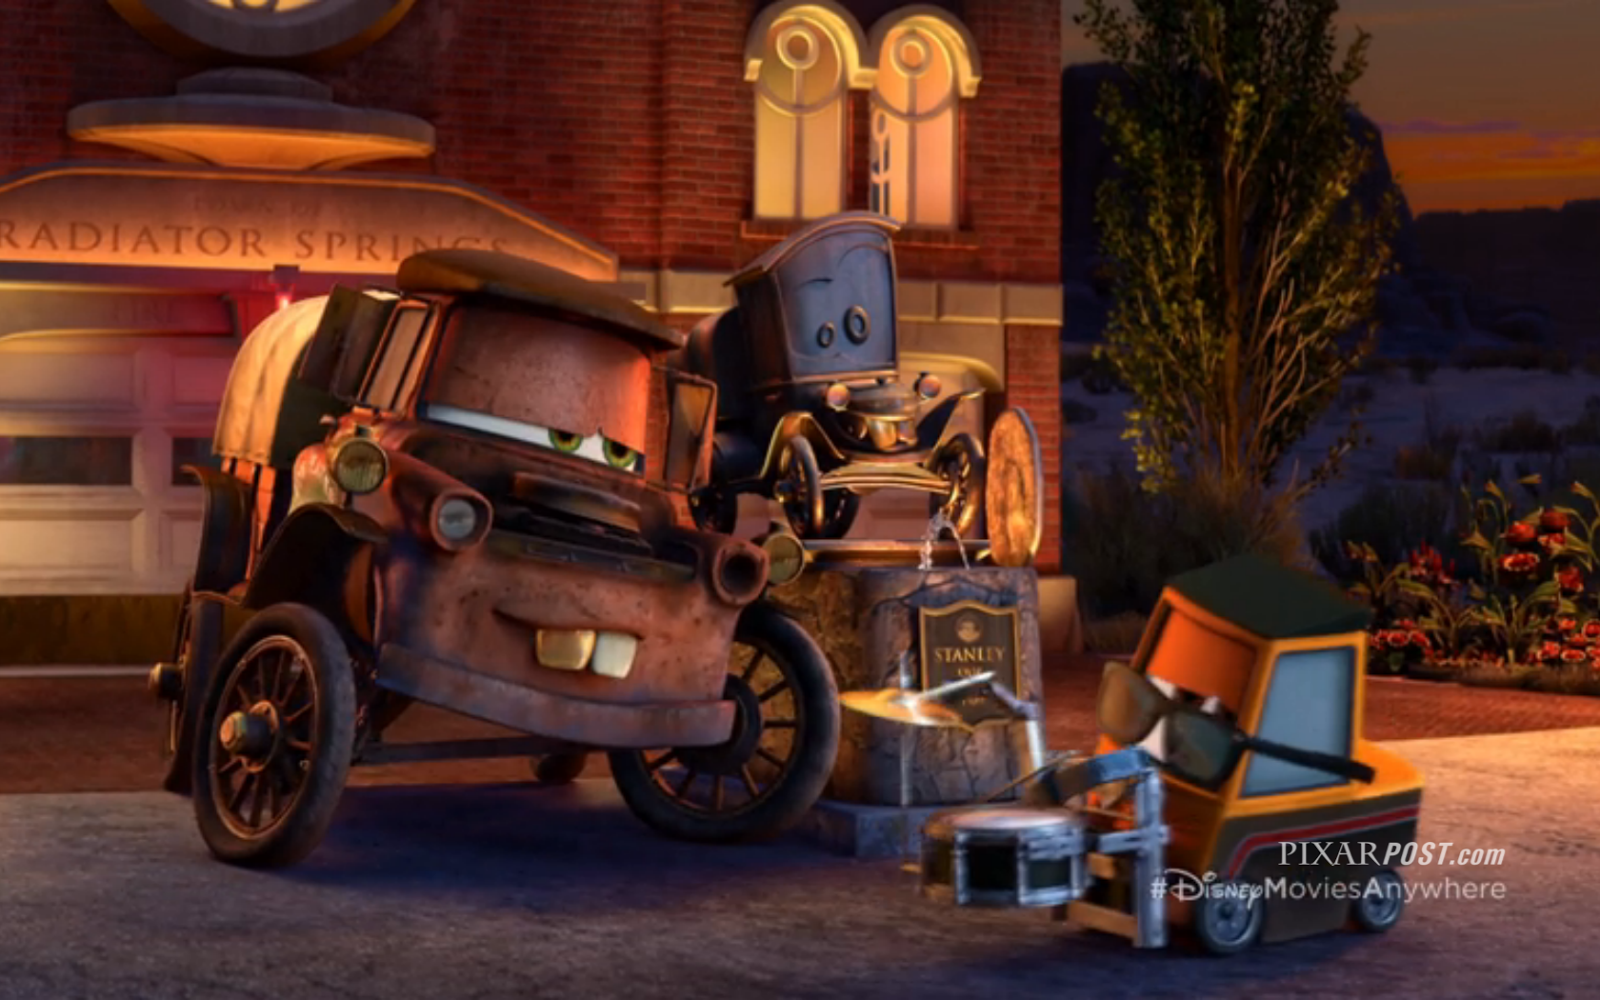 exclusive review  radiator springs   characters  die cast cars  details